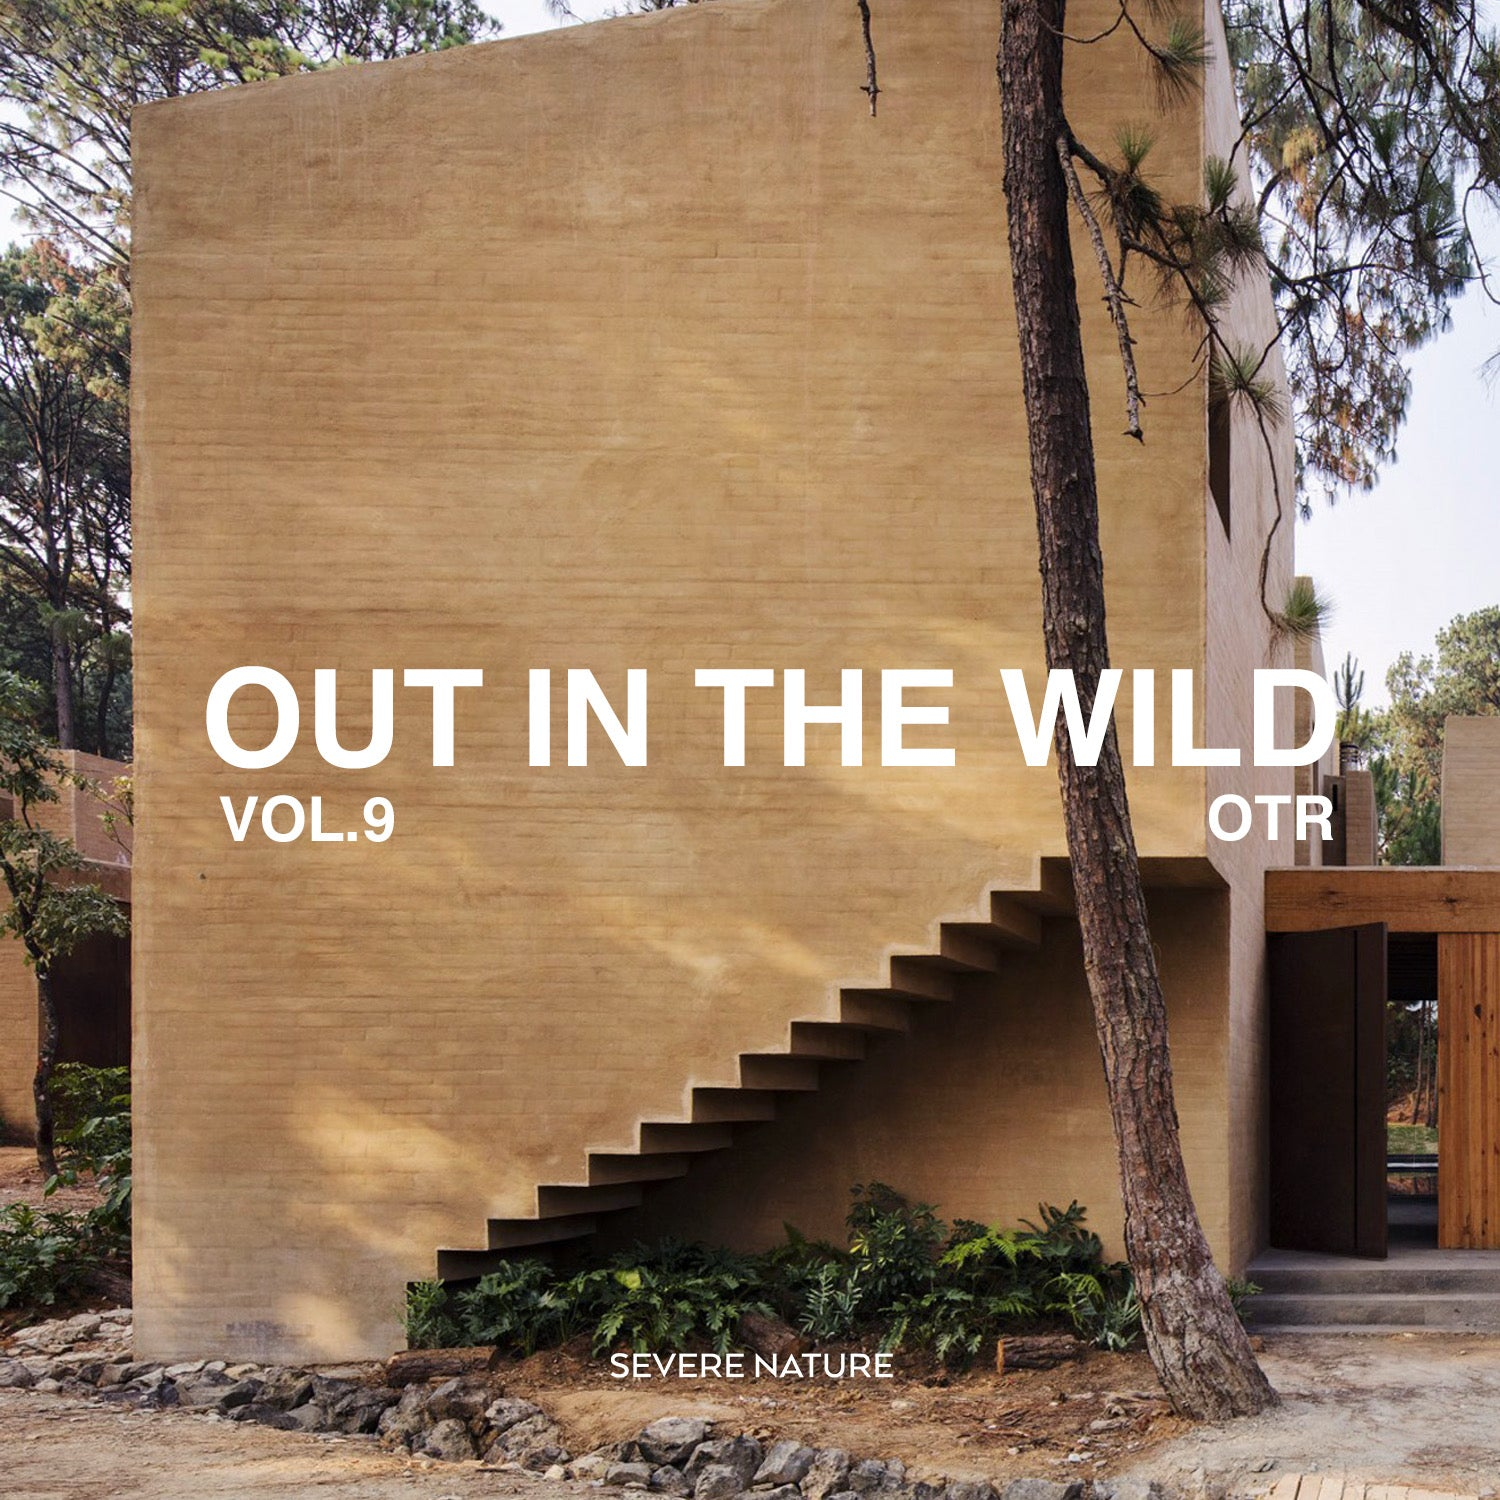 Out In The Wild Vol. 9 Curated by OTR